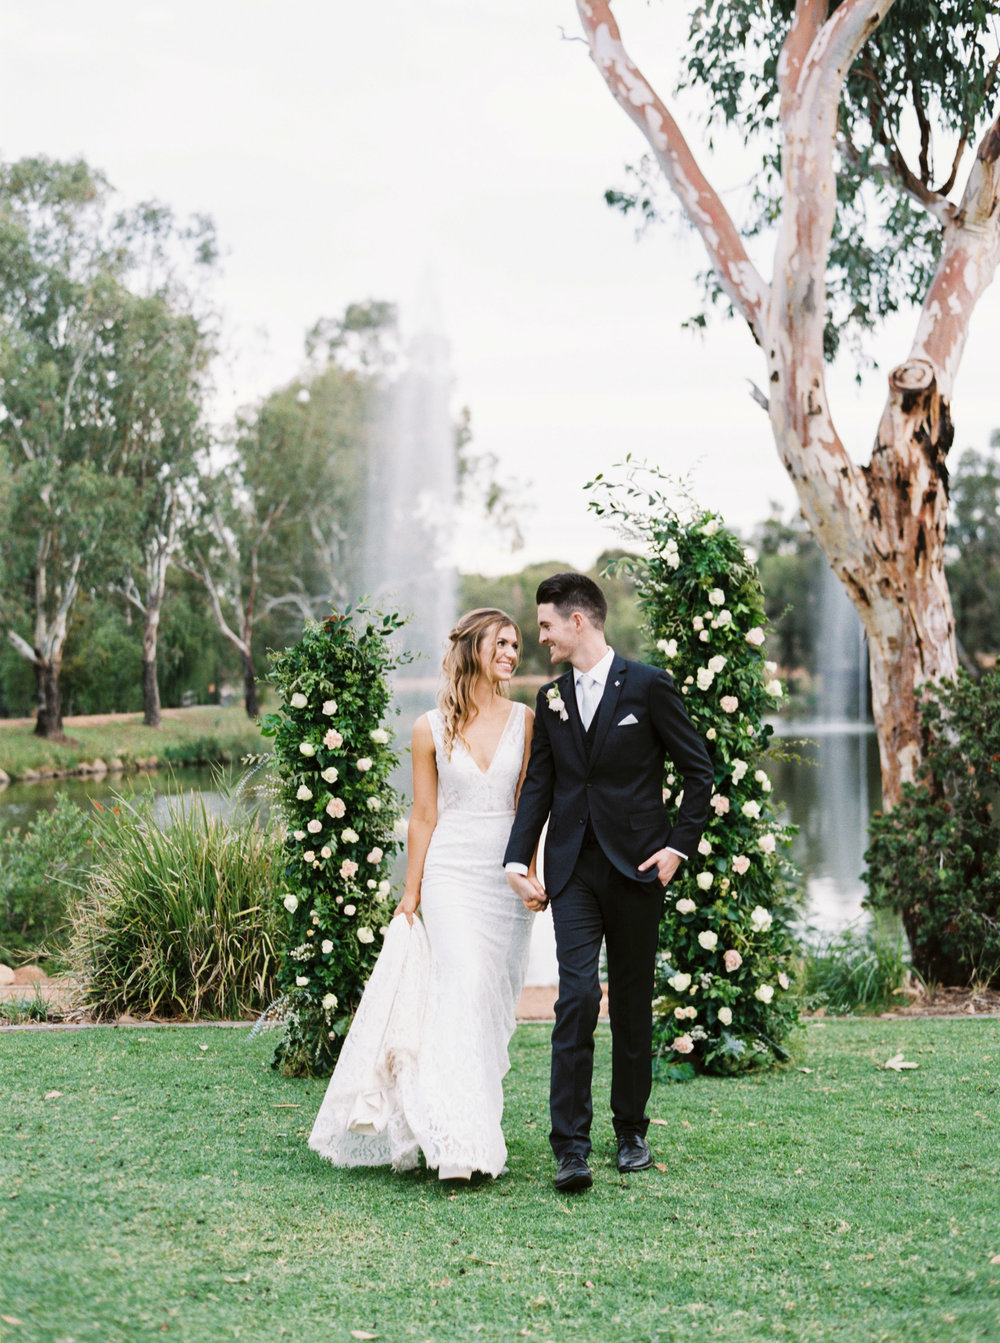 00008- Taronga Zoo Wedding Australia Fine Art Film Photographer Sheri McMahon.jpg